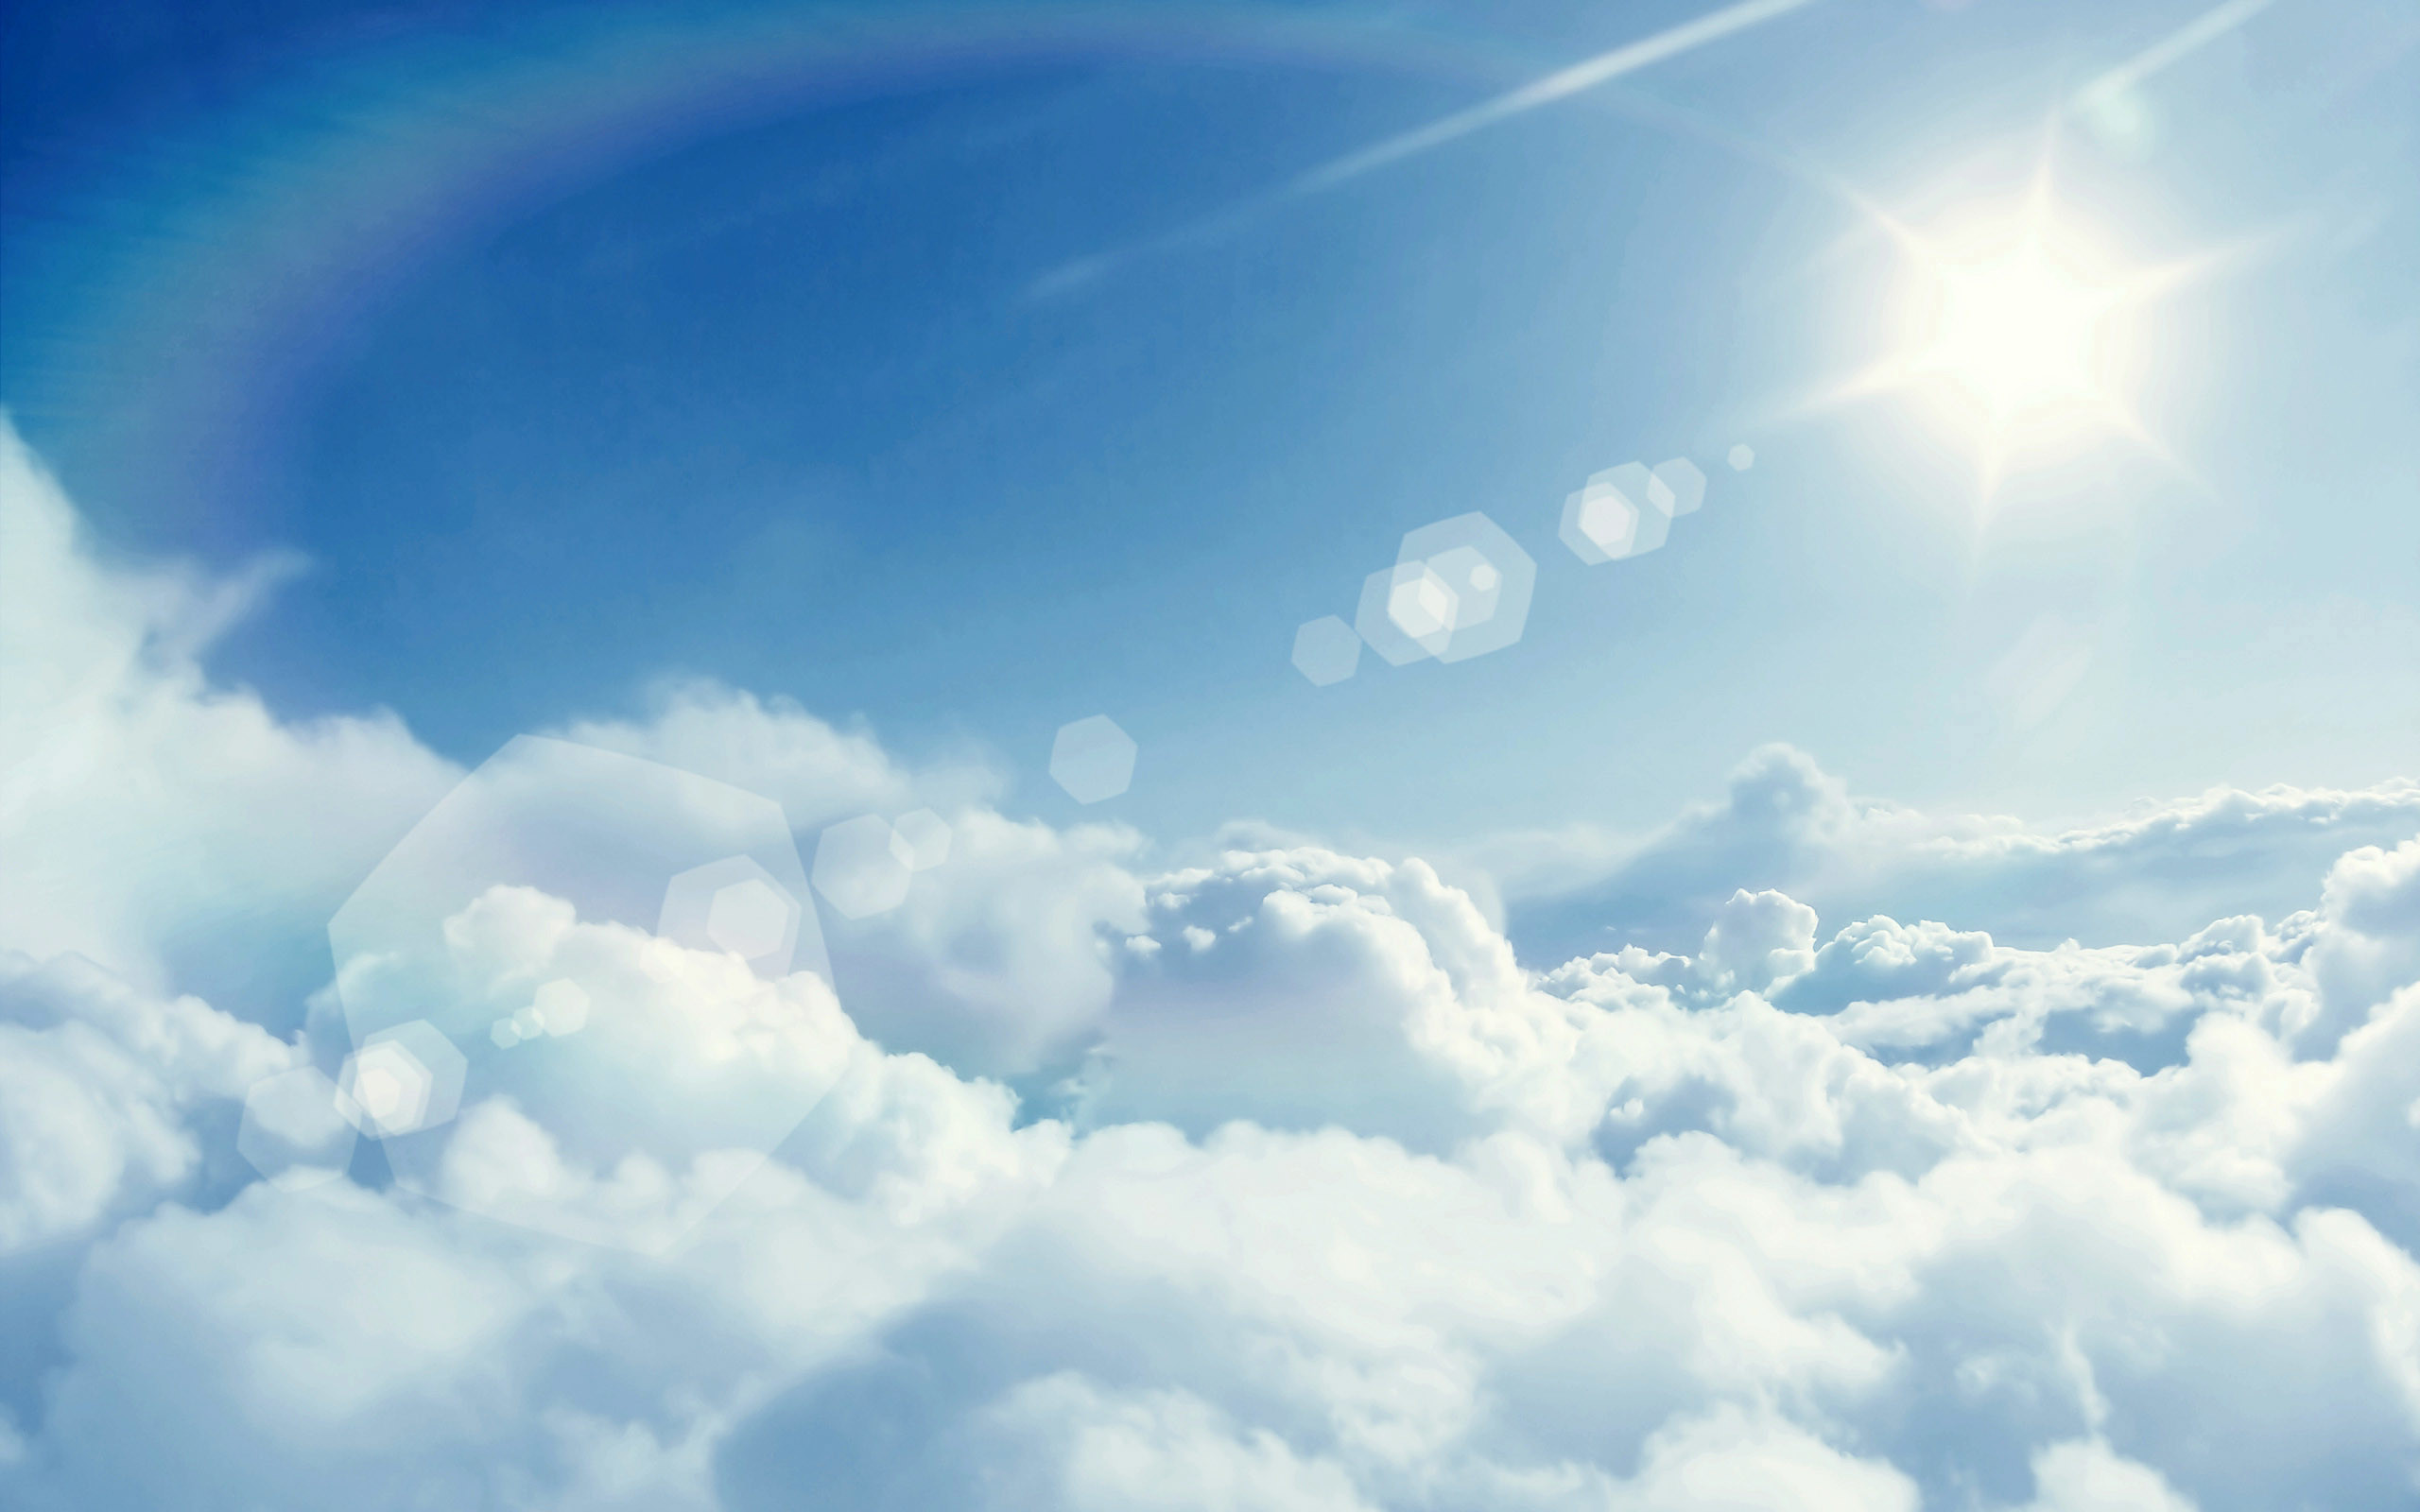 Cloud Wallpaper · Cloud Wallpaper free powerpoint background. Hearts With  Clouds And Blue Sky …